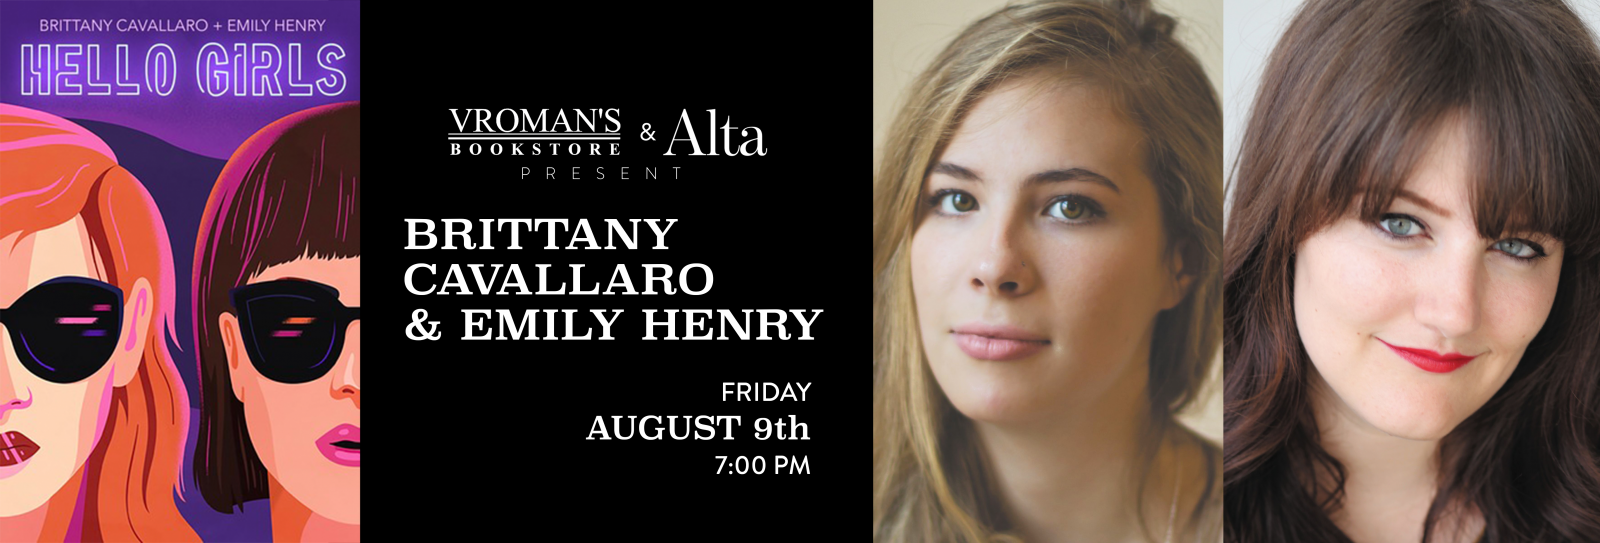 Brittany Cavallaro and Emily Henry book signing Friday August 9th at 7pm